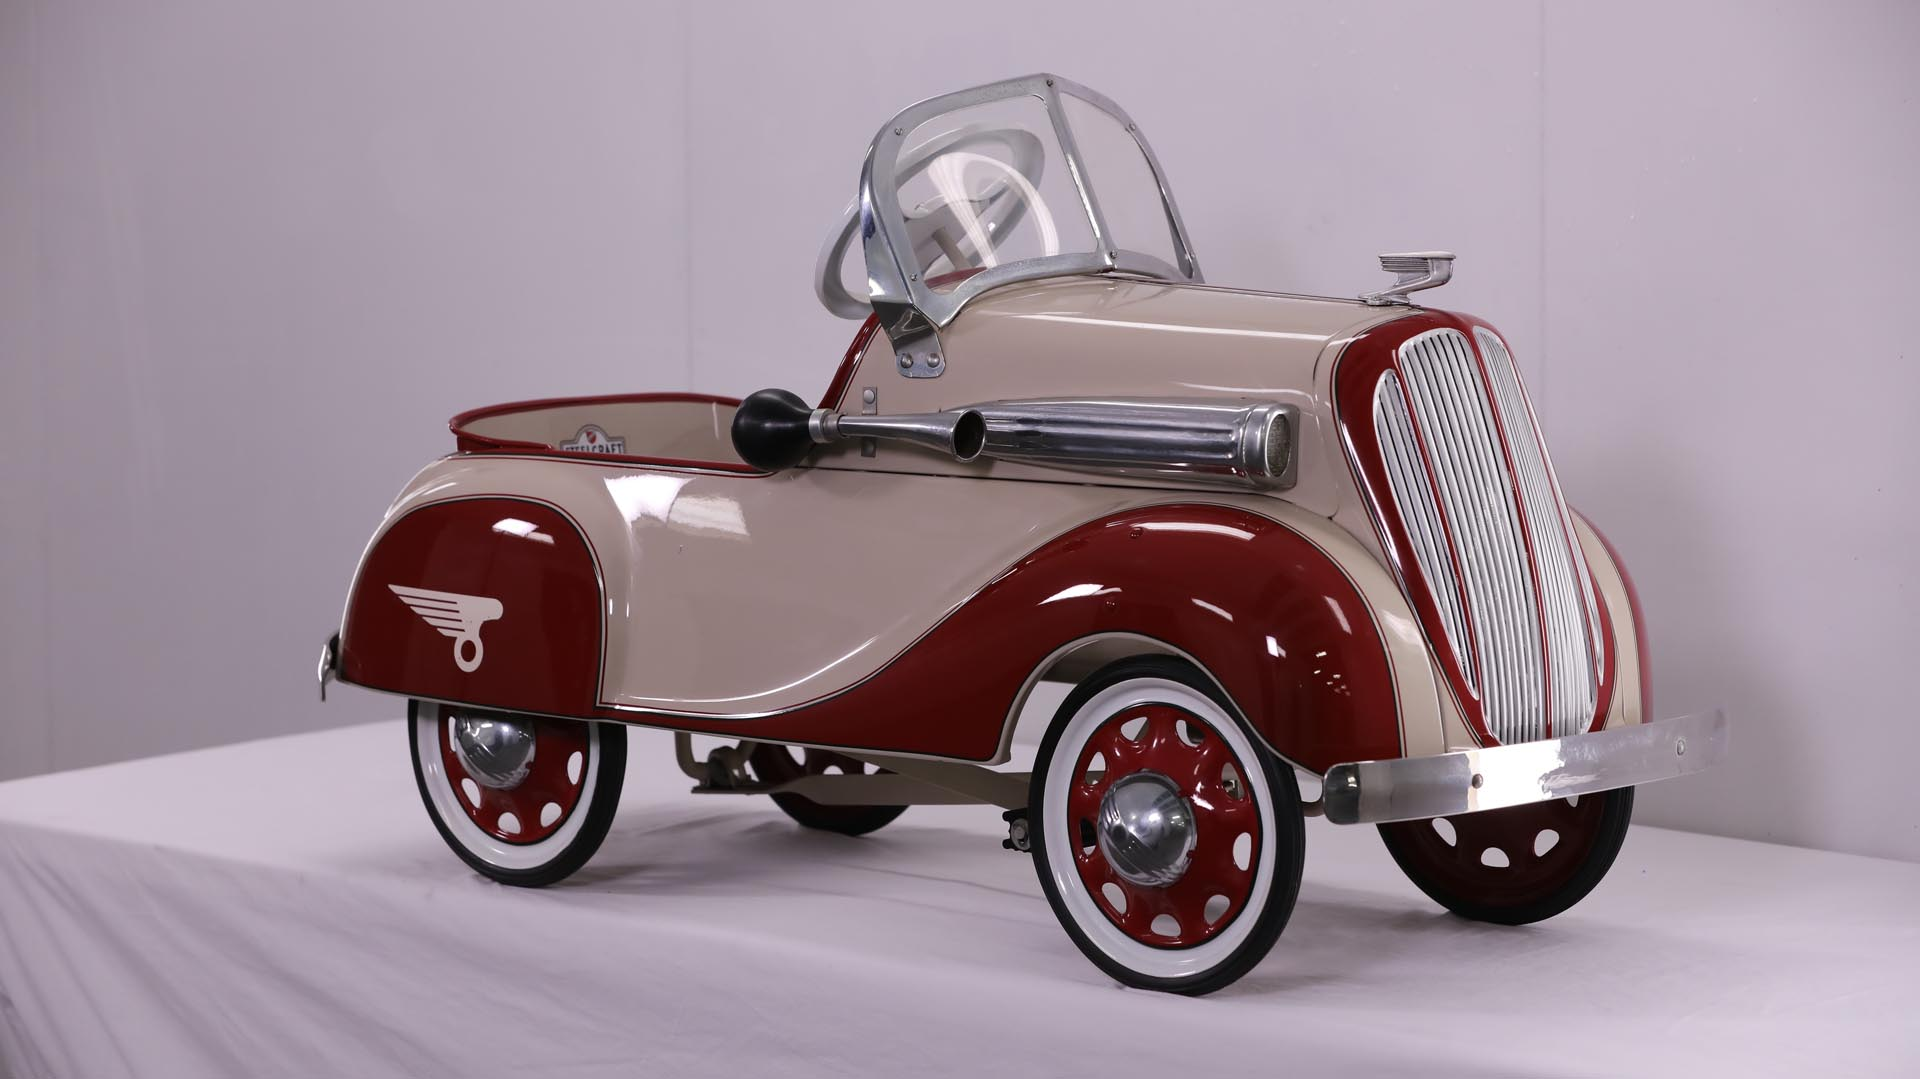 1930s Steelcraft Roadster Pedal Car